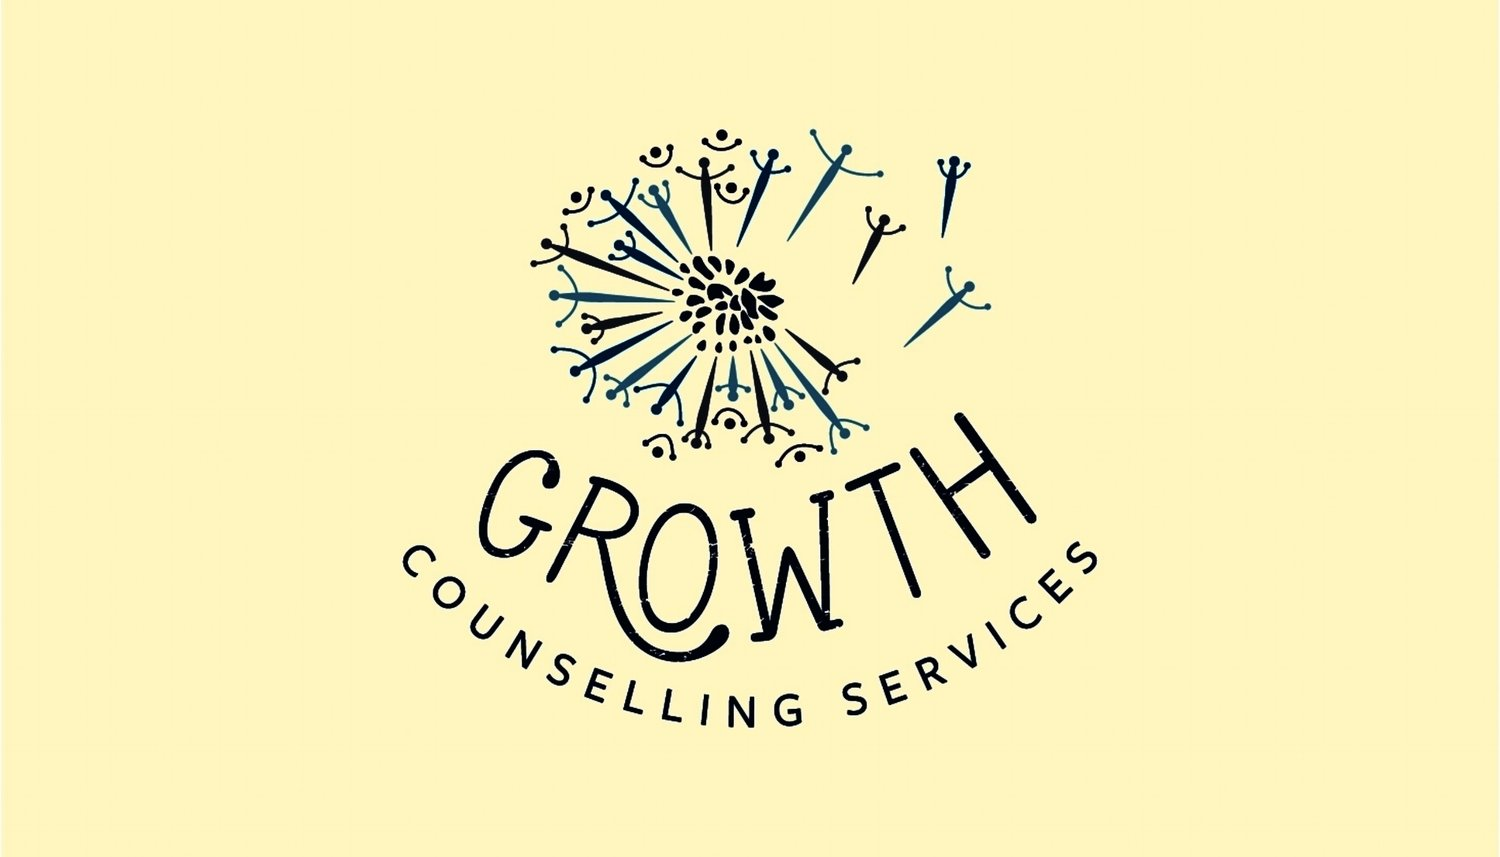 Growth Counselling Services Cambridge | Counselling services Waterloo Region